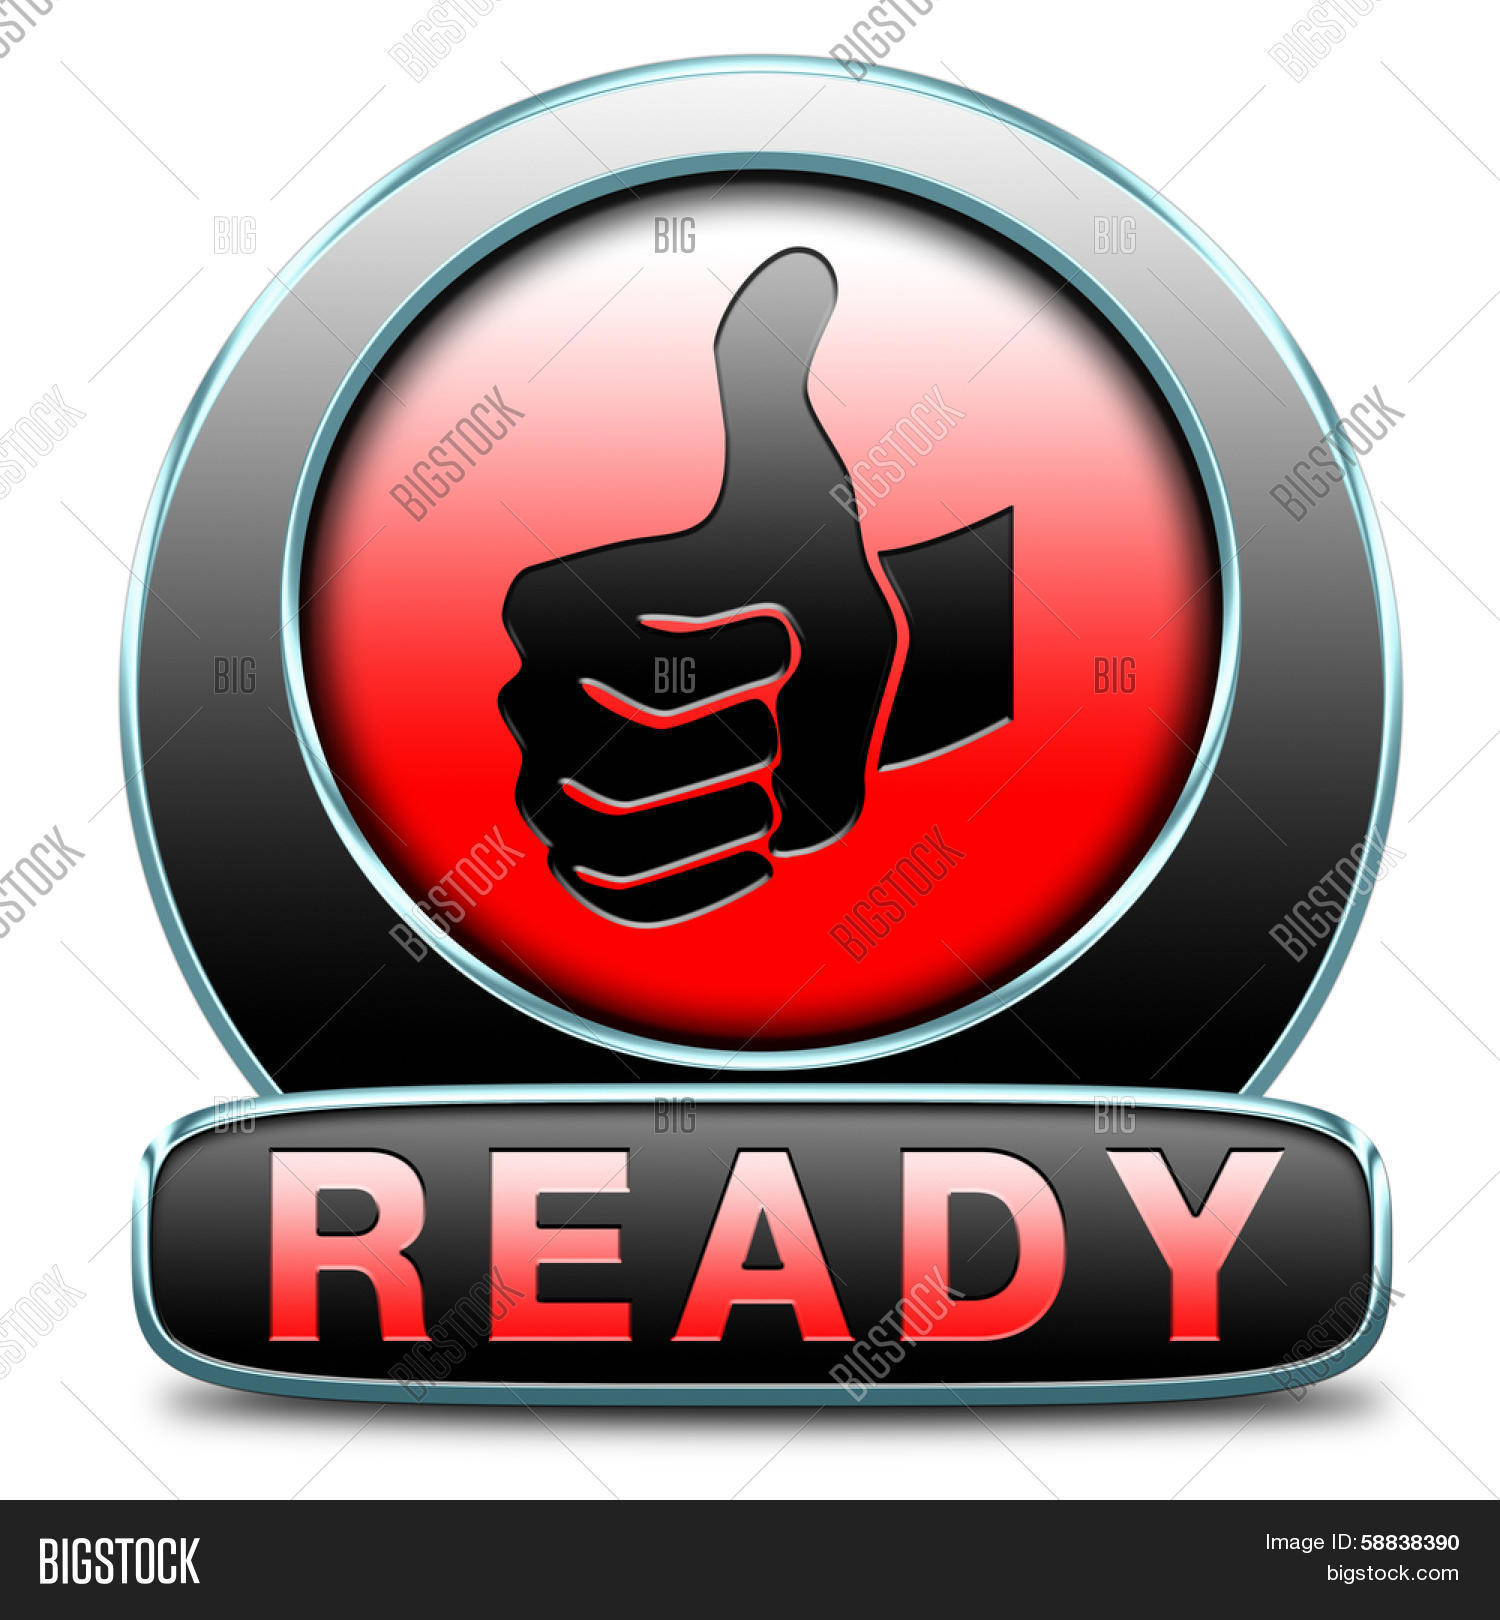 Ready go job done slogan icon sign image photo bigstock for Ready to go images